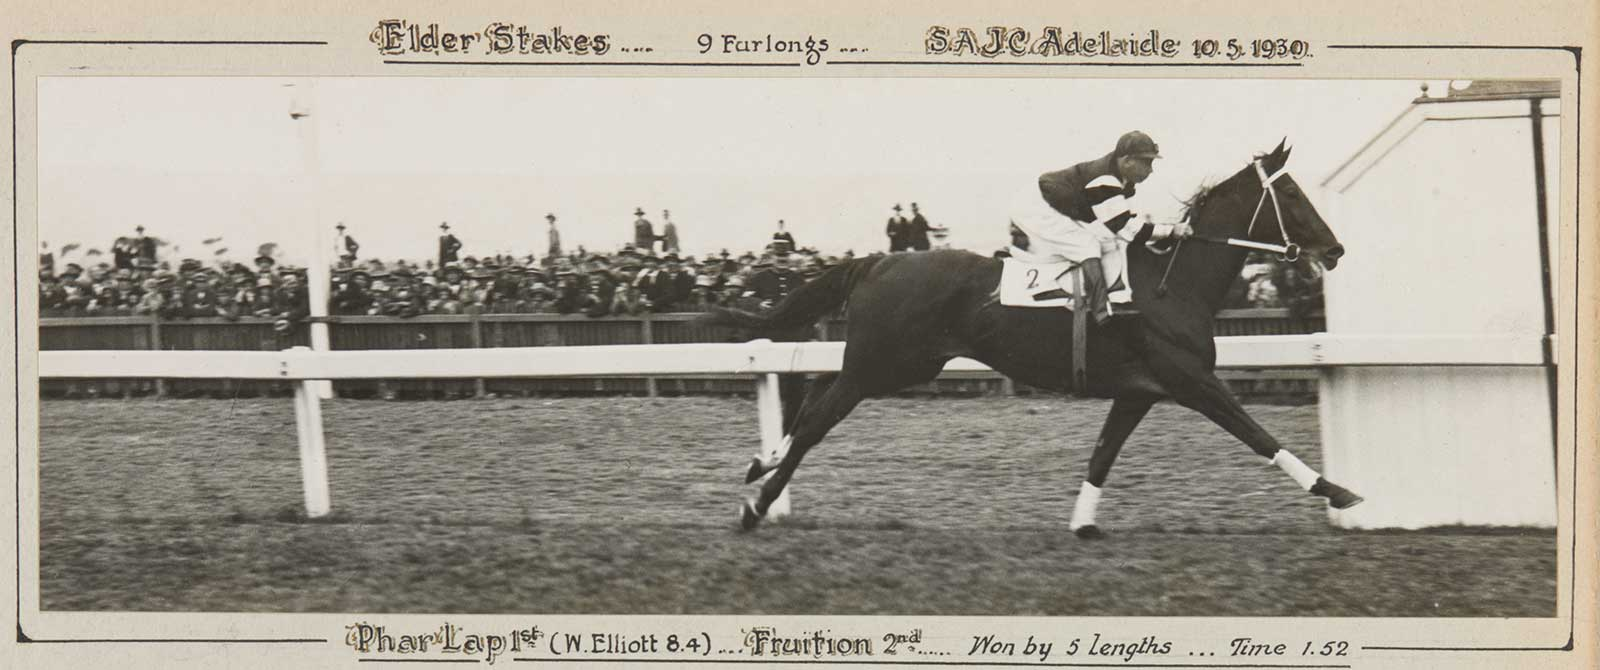 A black and white photo of Phar Lap winning the 1930 Elder Stakes. - click to view larger image